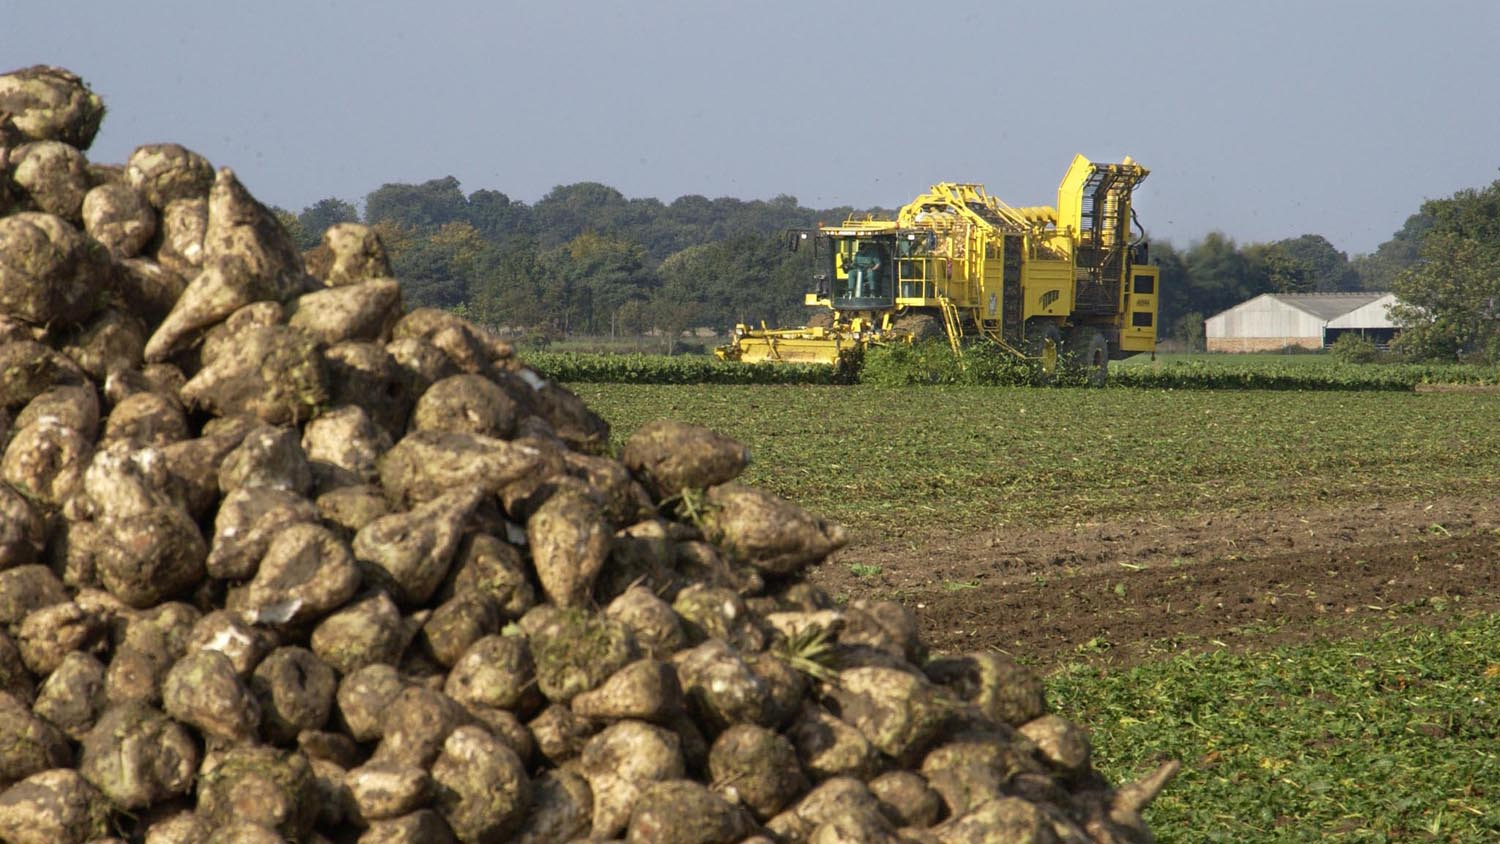 Reasons to be cheerful? Sugar beet industry has optimistic future, experts say